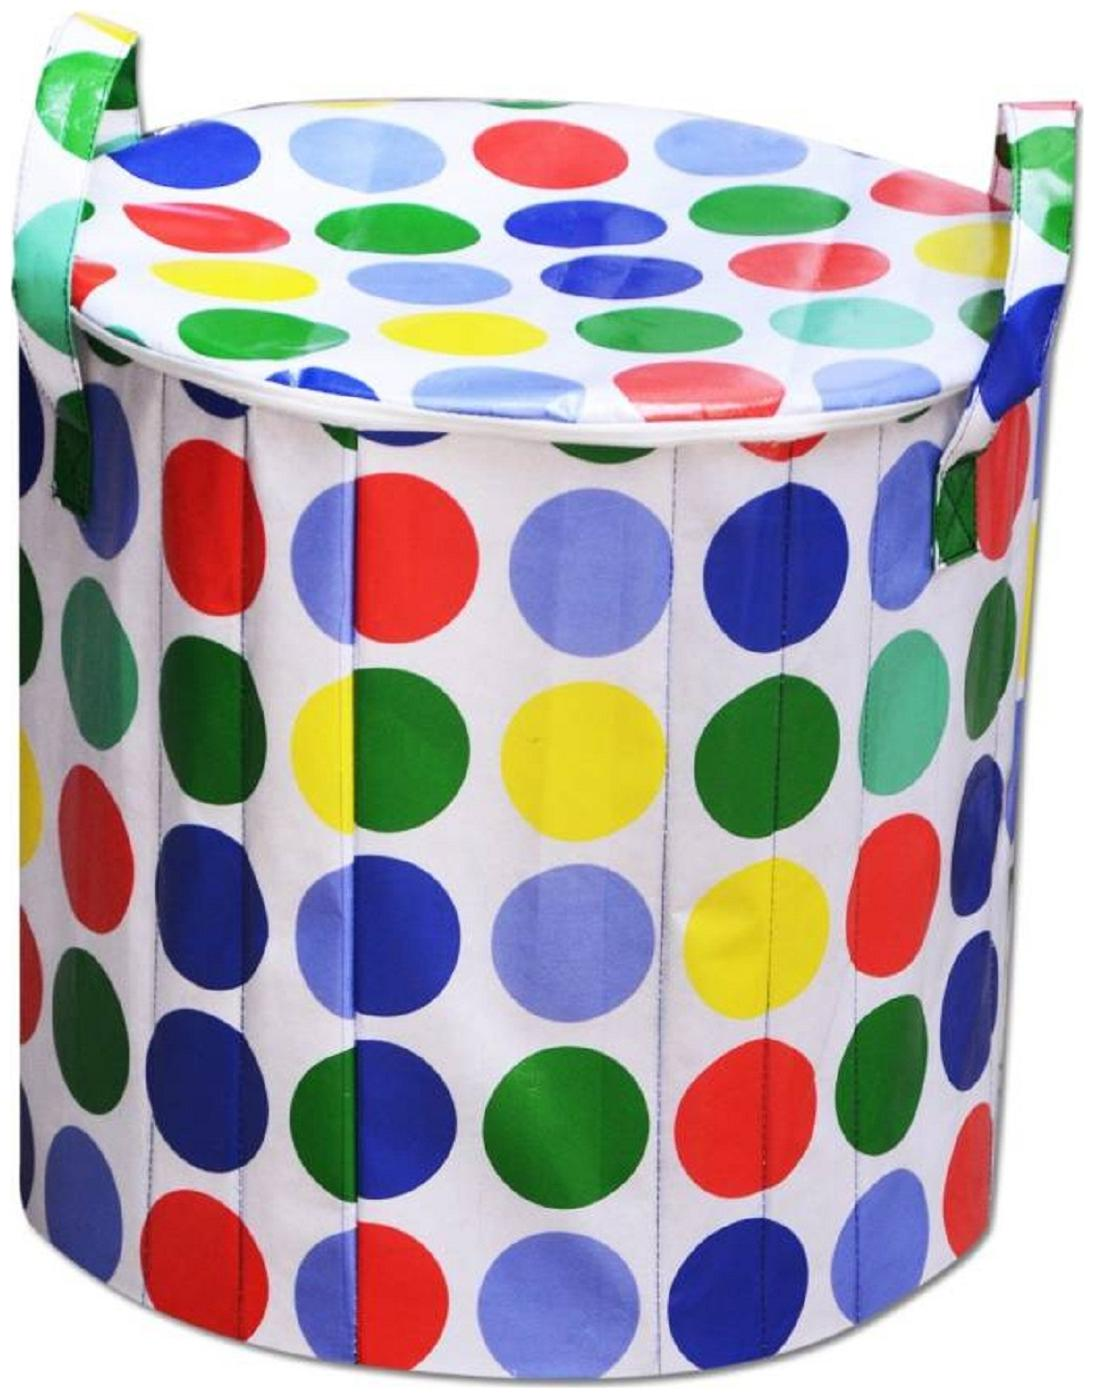 Shree jee more than 20 l stylish colourful laundry bags